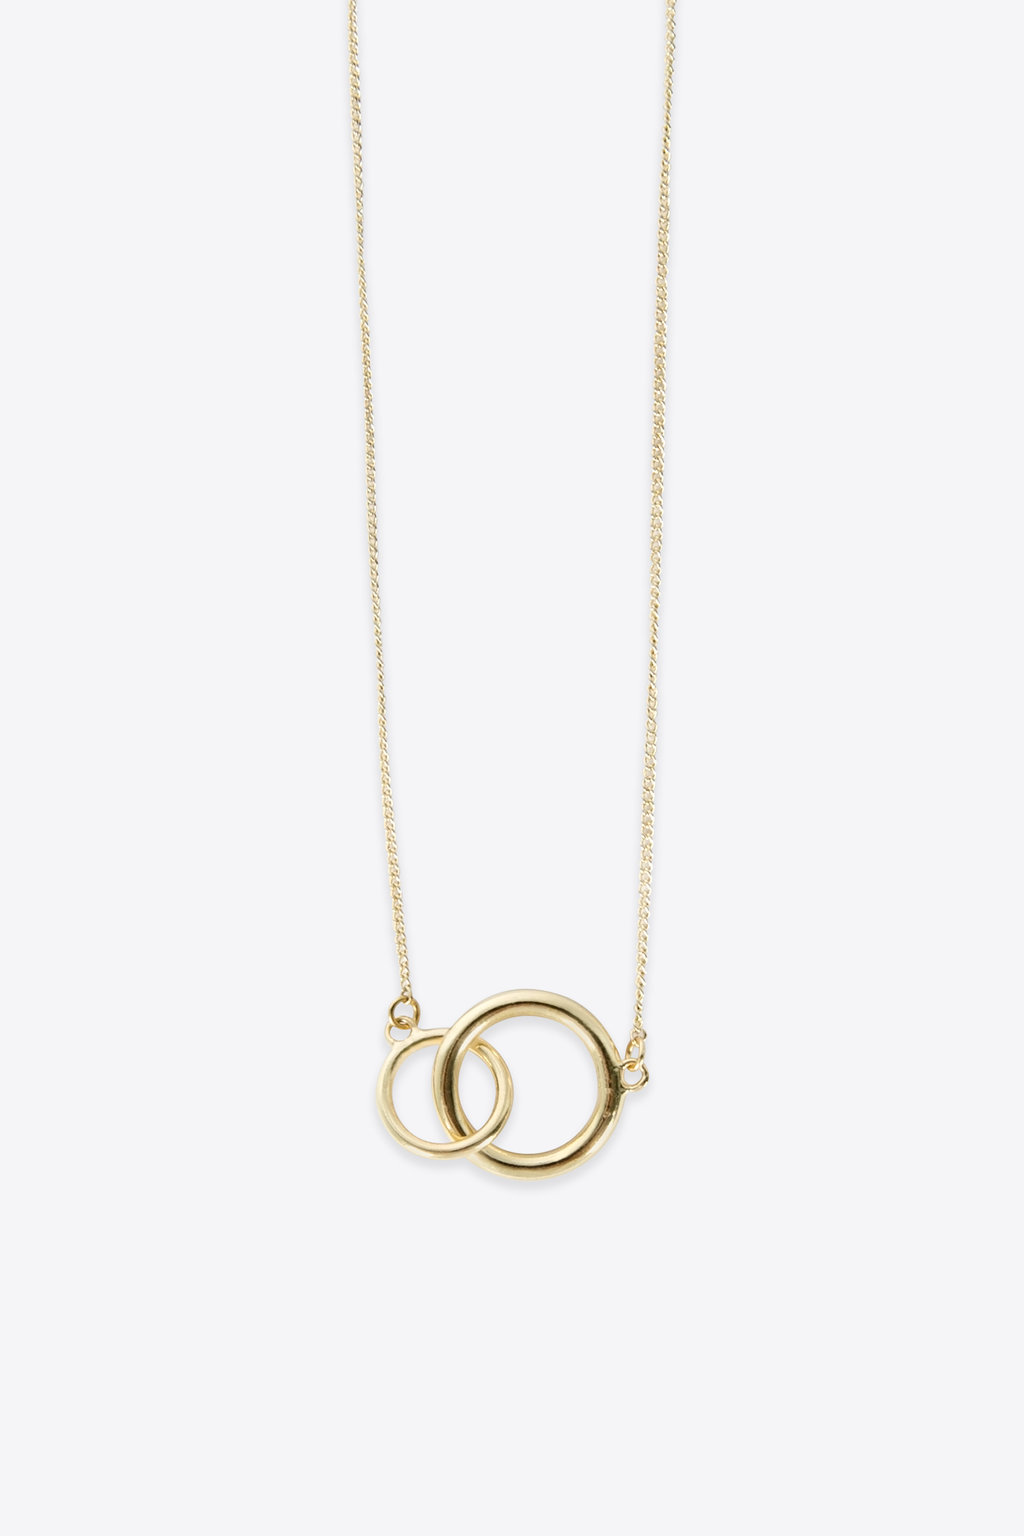 Necklace 2543 Gold 2